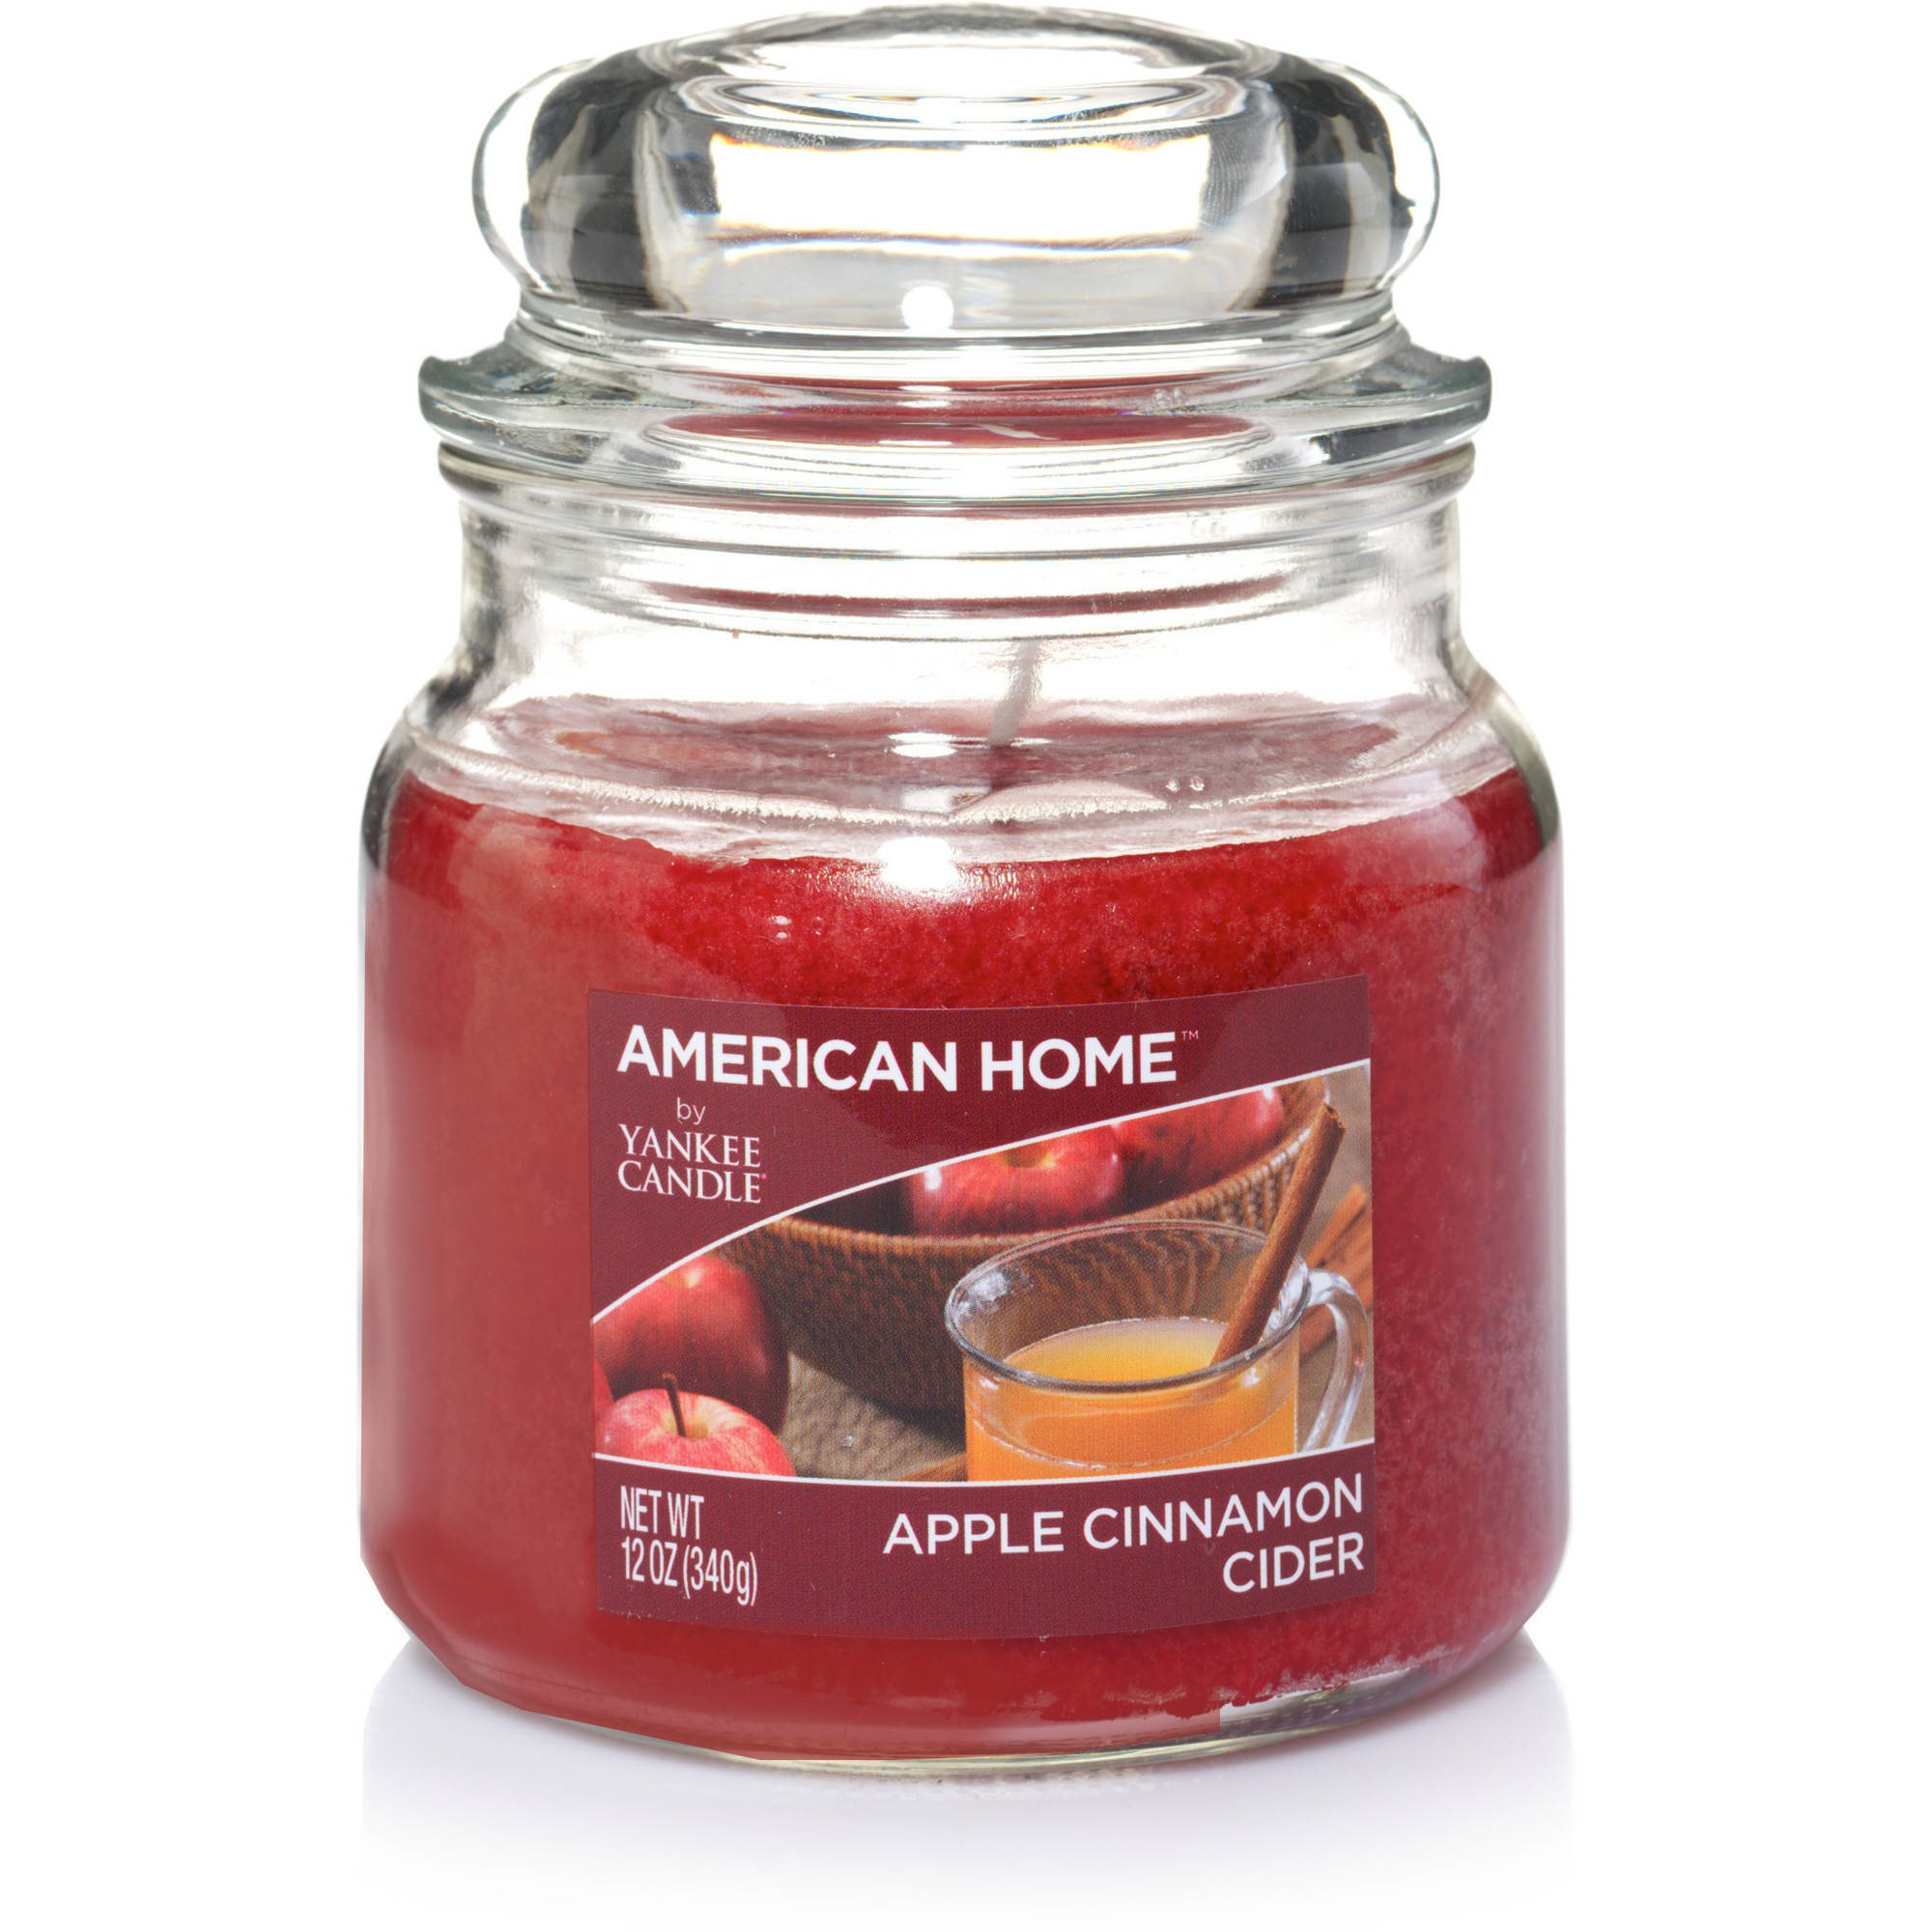 American Home by Yankee Candle Apple Cinnamon Cider, 12 oz Medium Jar